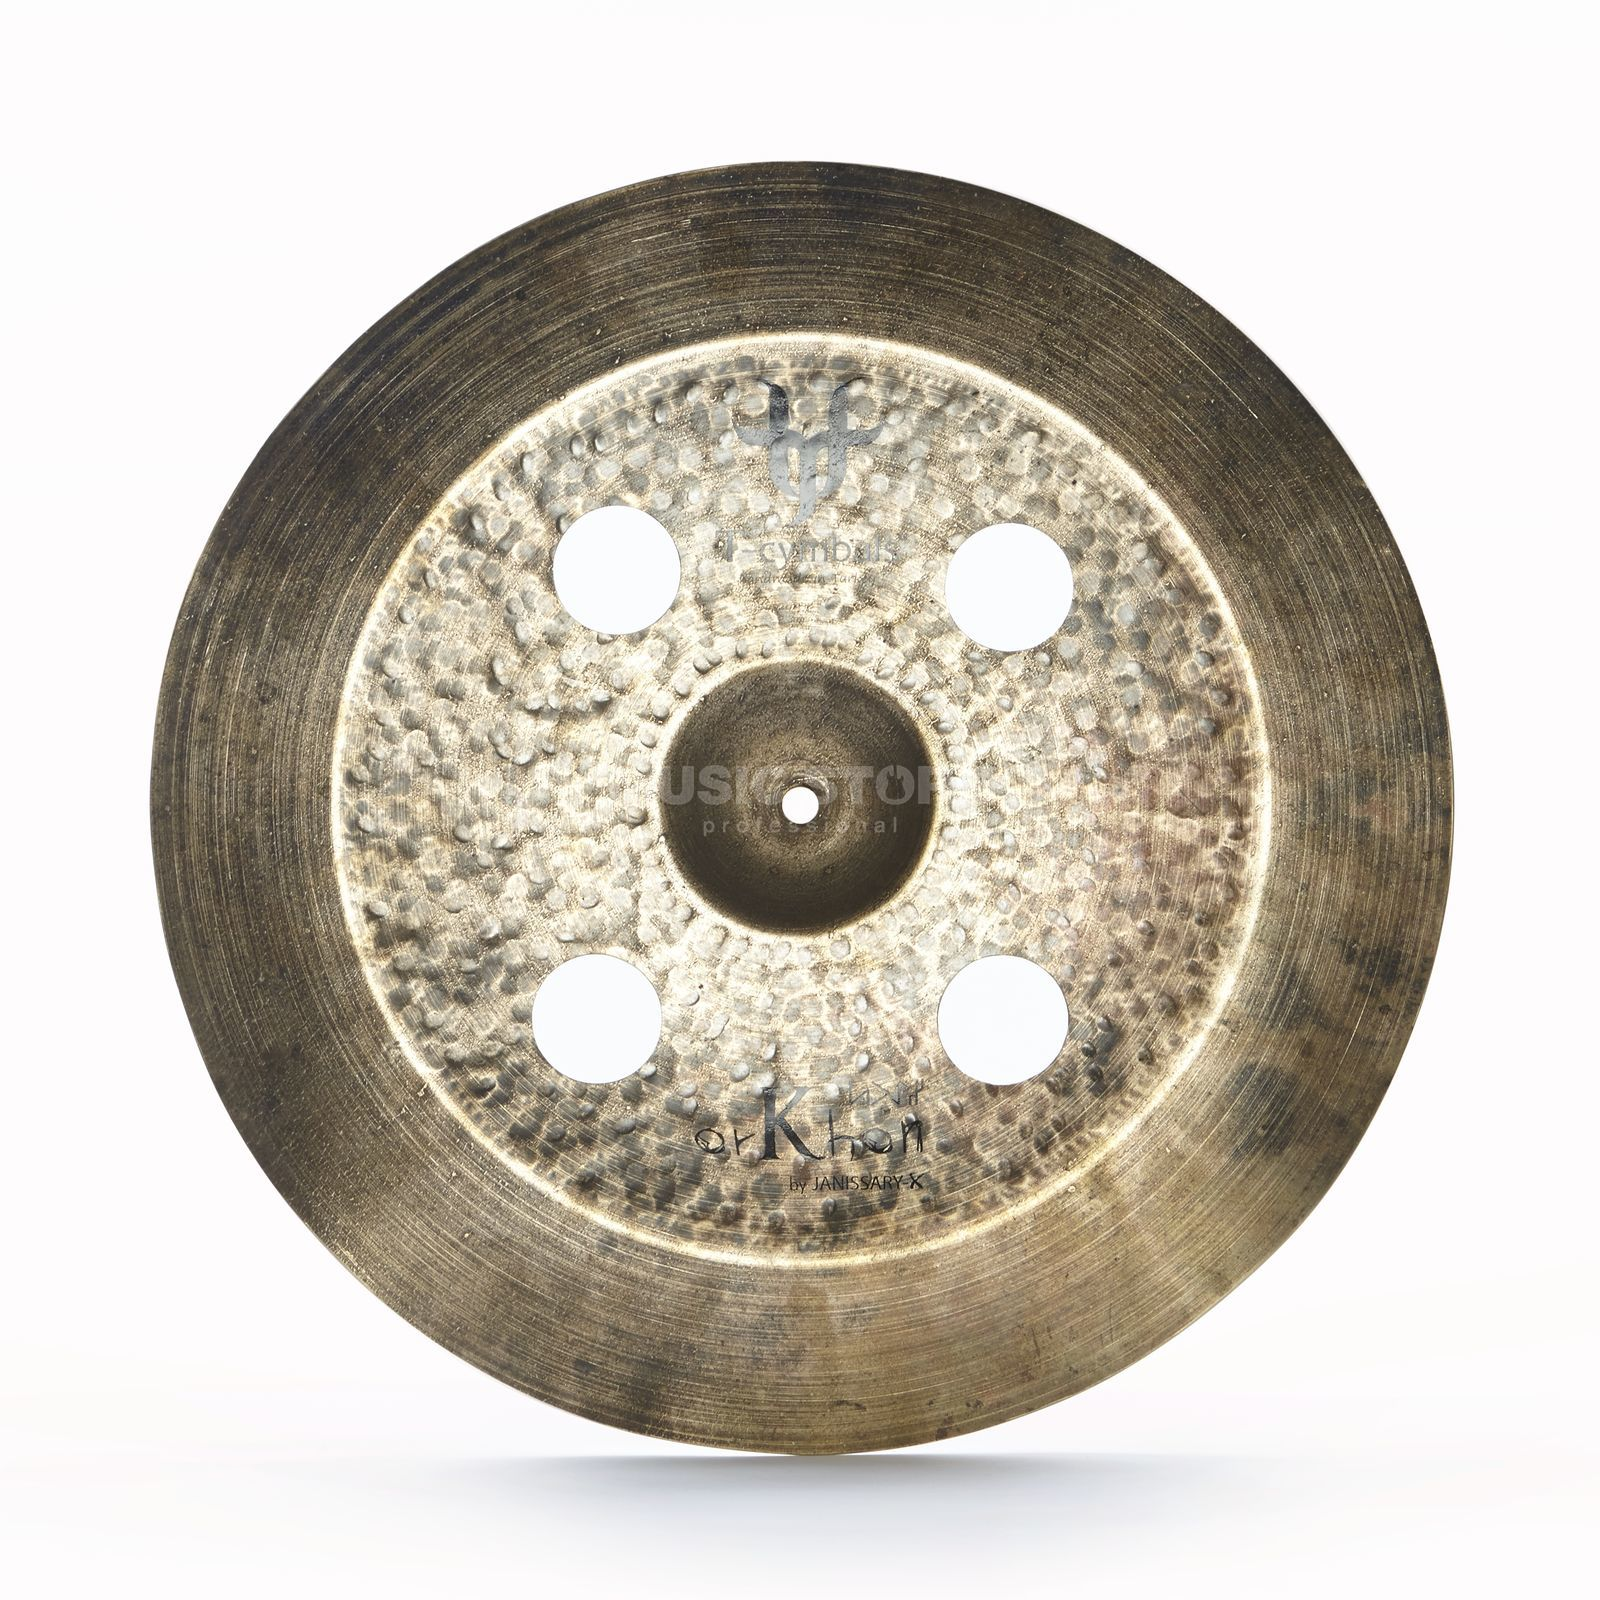 "T-Cymbals Janissary-X Orkhon China 18"" Produktbillede"